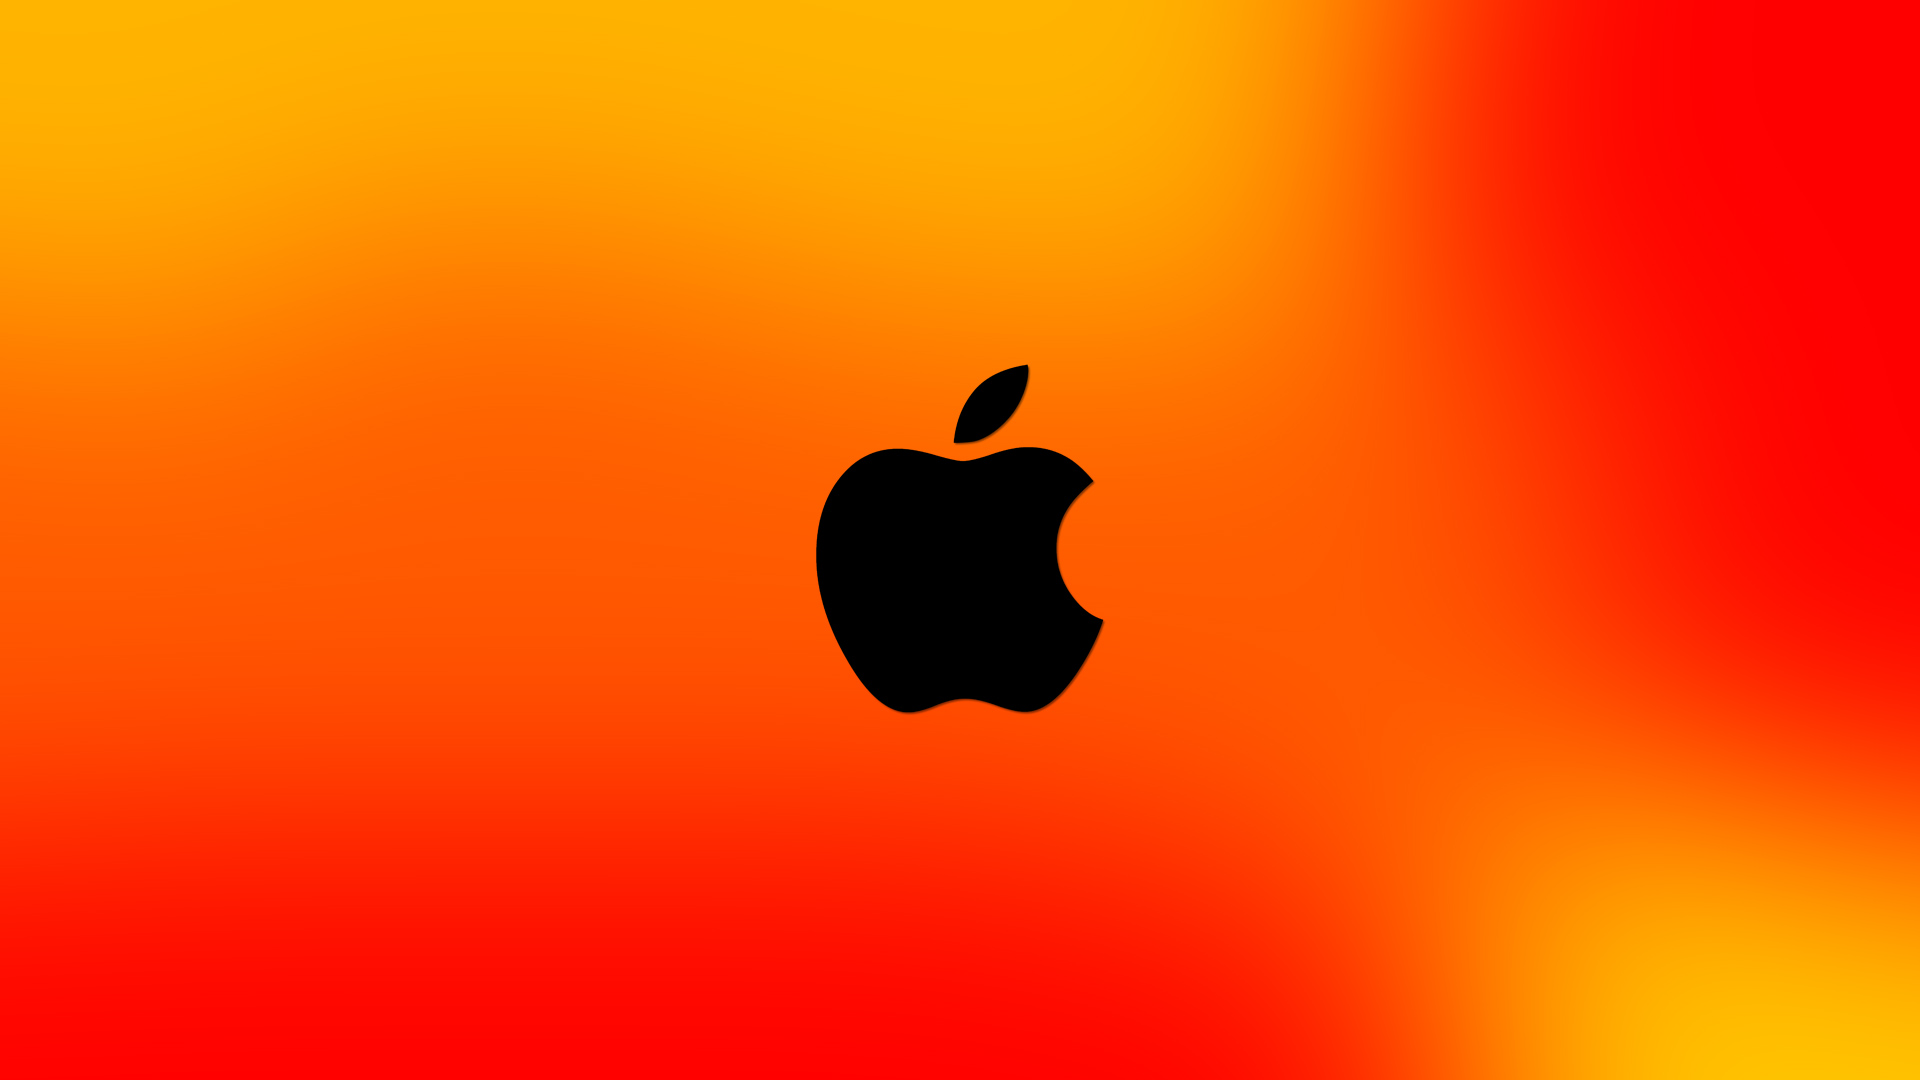 Mac Wallpapers High Res 1080p 1920x1080